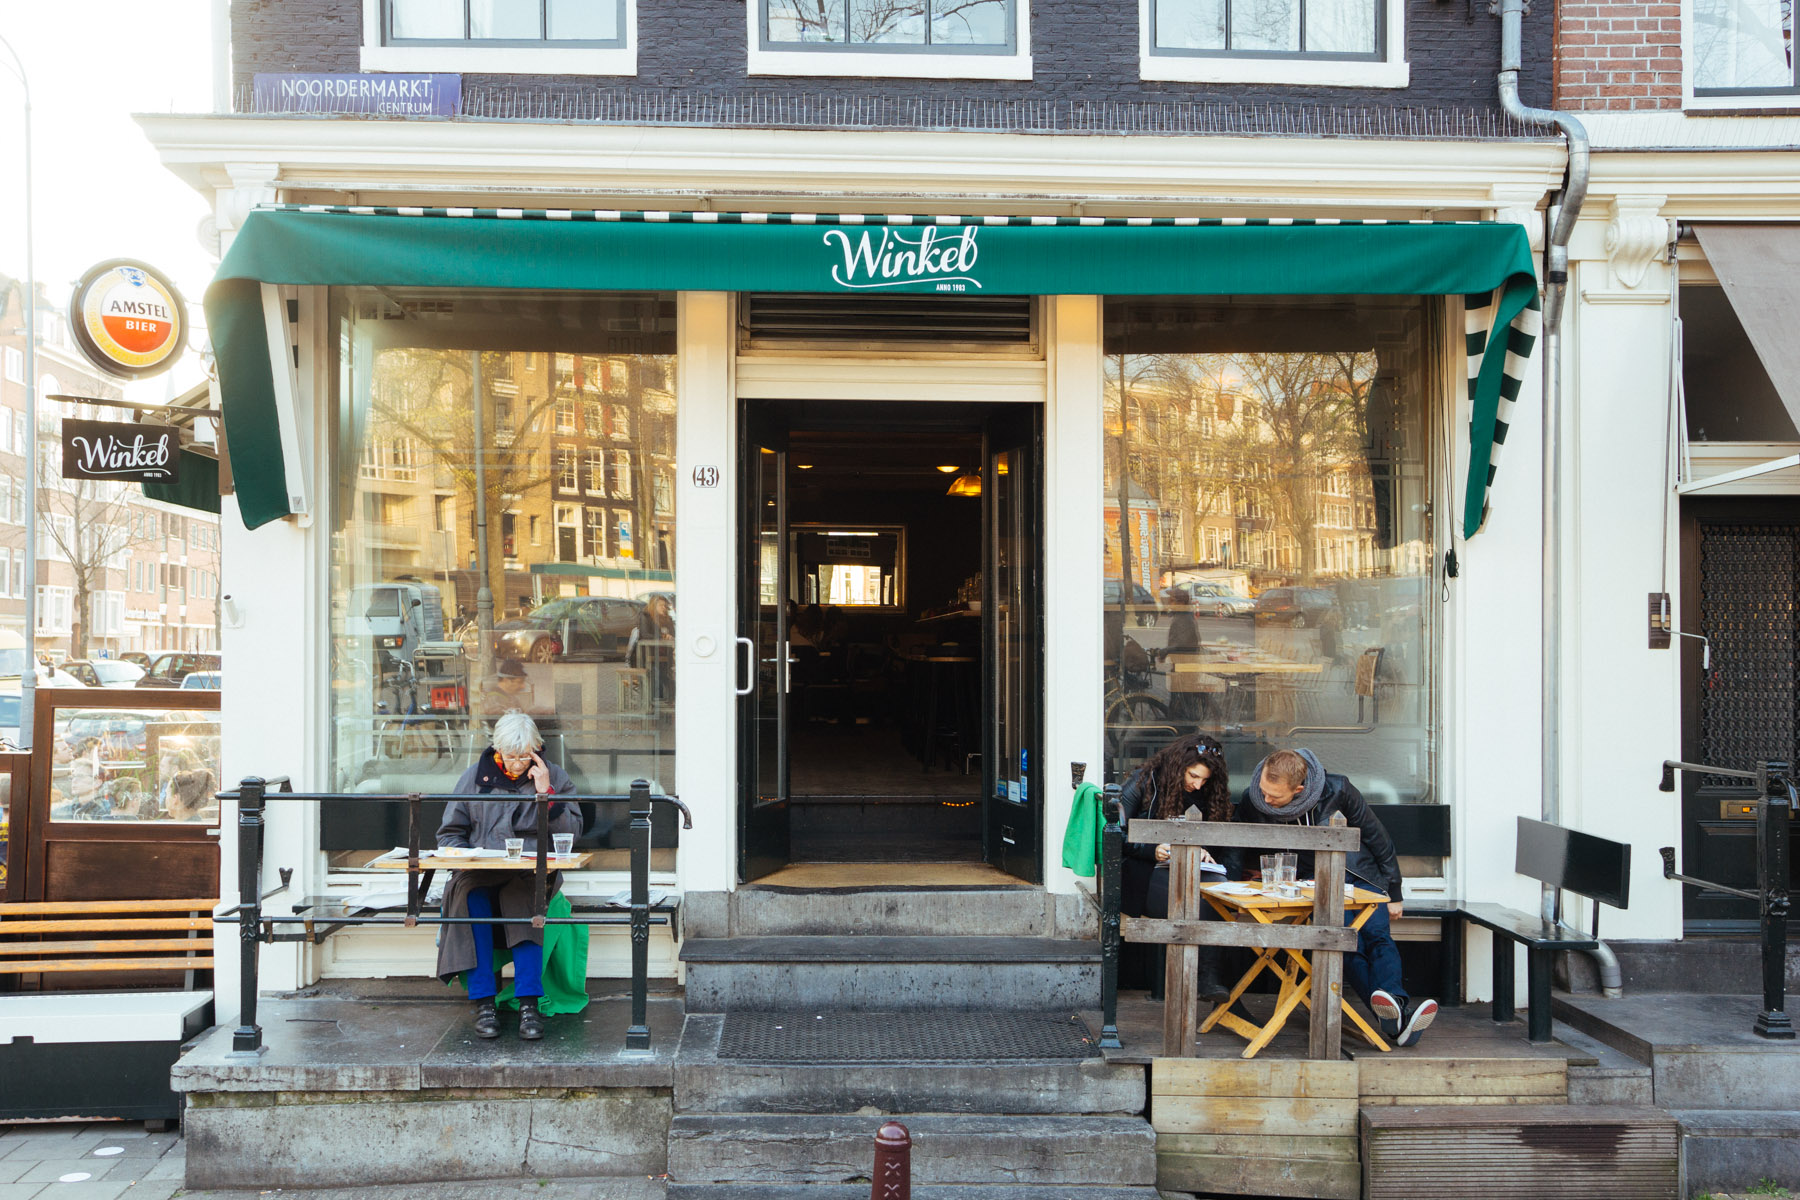 Cafe Winkel 43 Review  Best Apple Pie    Appeltaart in Amsterdam, Netherlands   That Food Cray